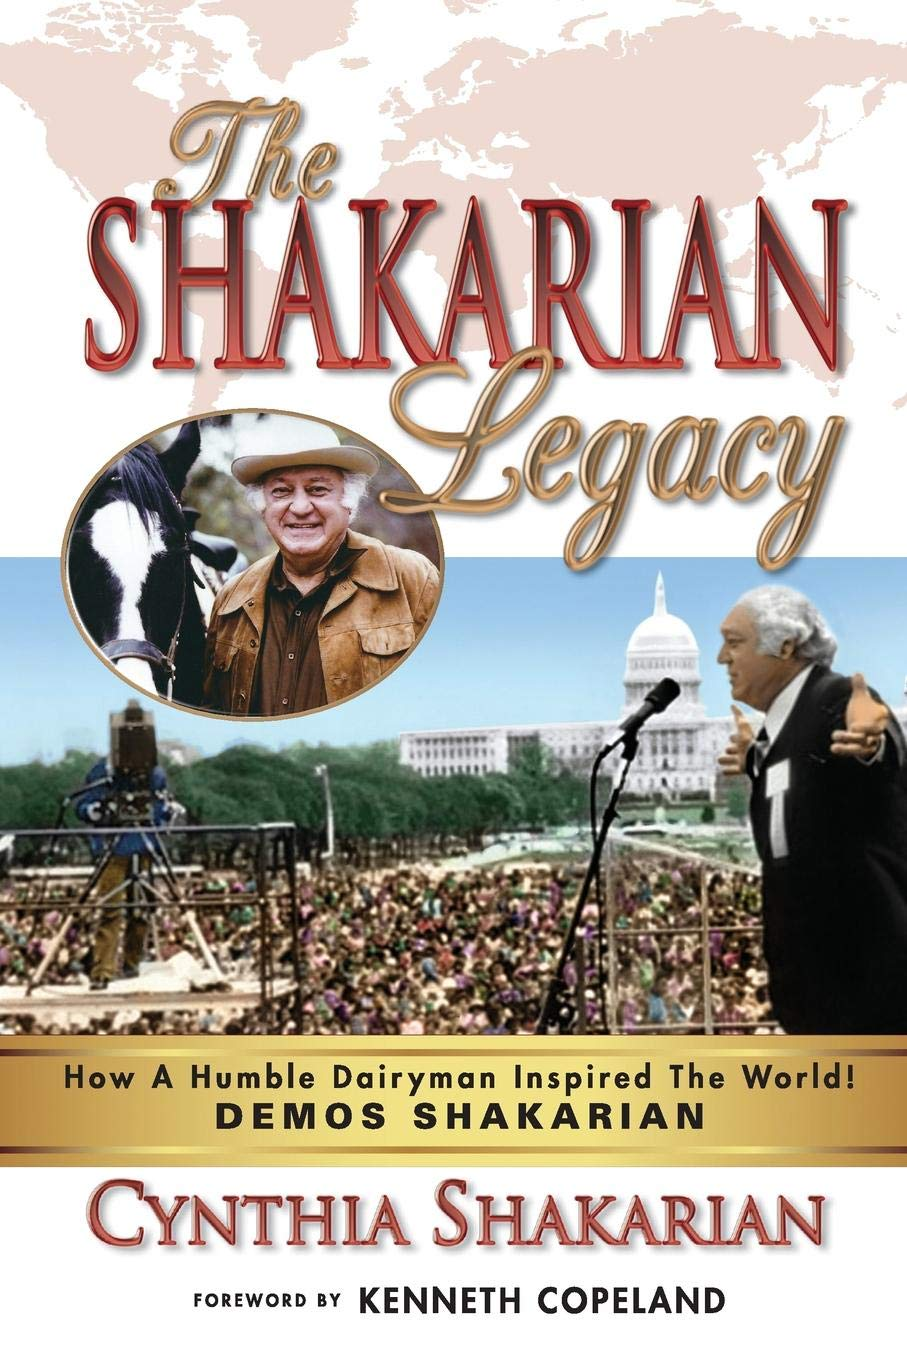 The Shakarian Legacy: How A Humble Dairyman Inspired The World